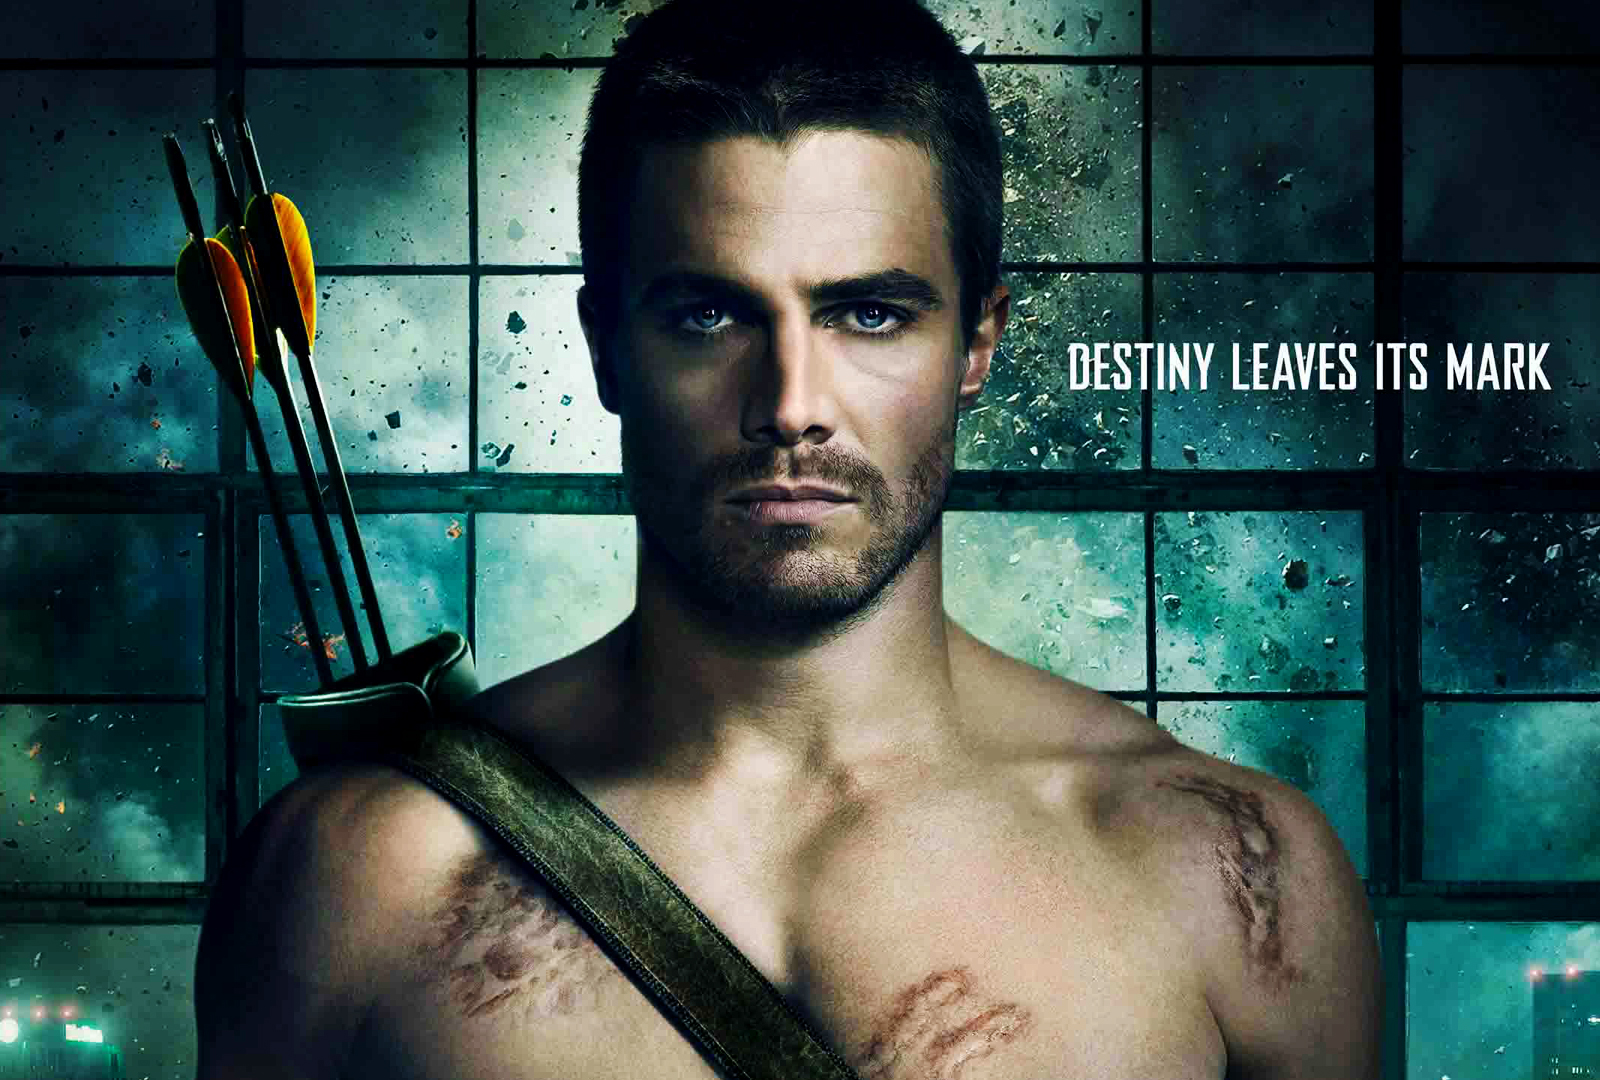 Arrow Tv Series HD Wallpapers HQ Wallpapers - Free Wallpapers Free HQ ...